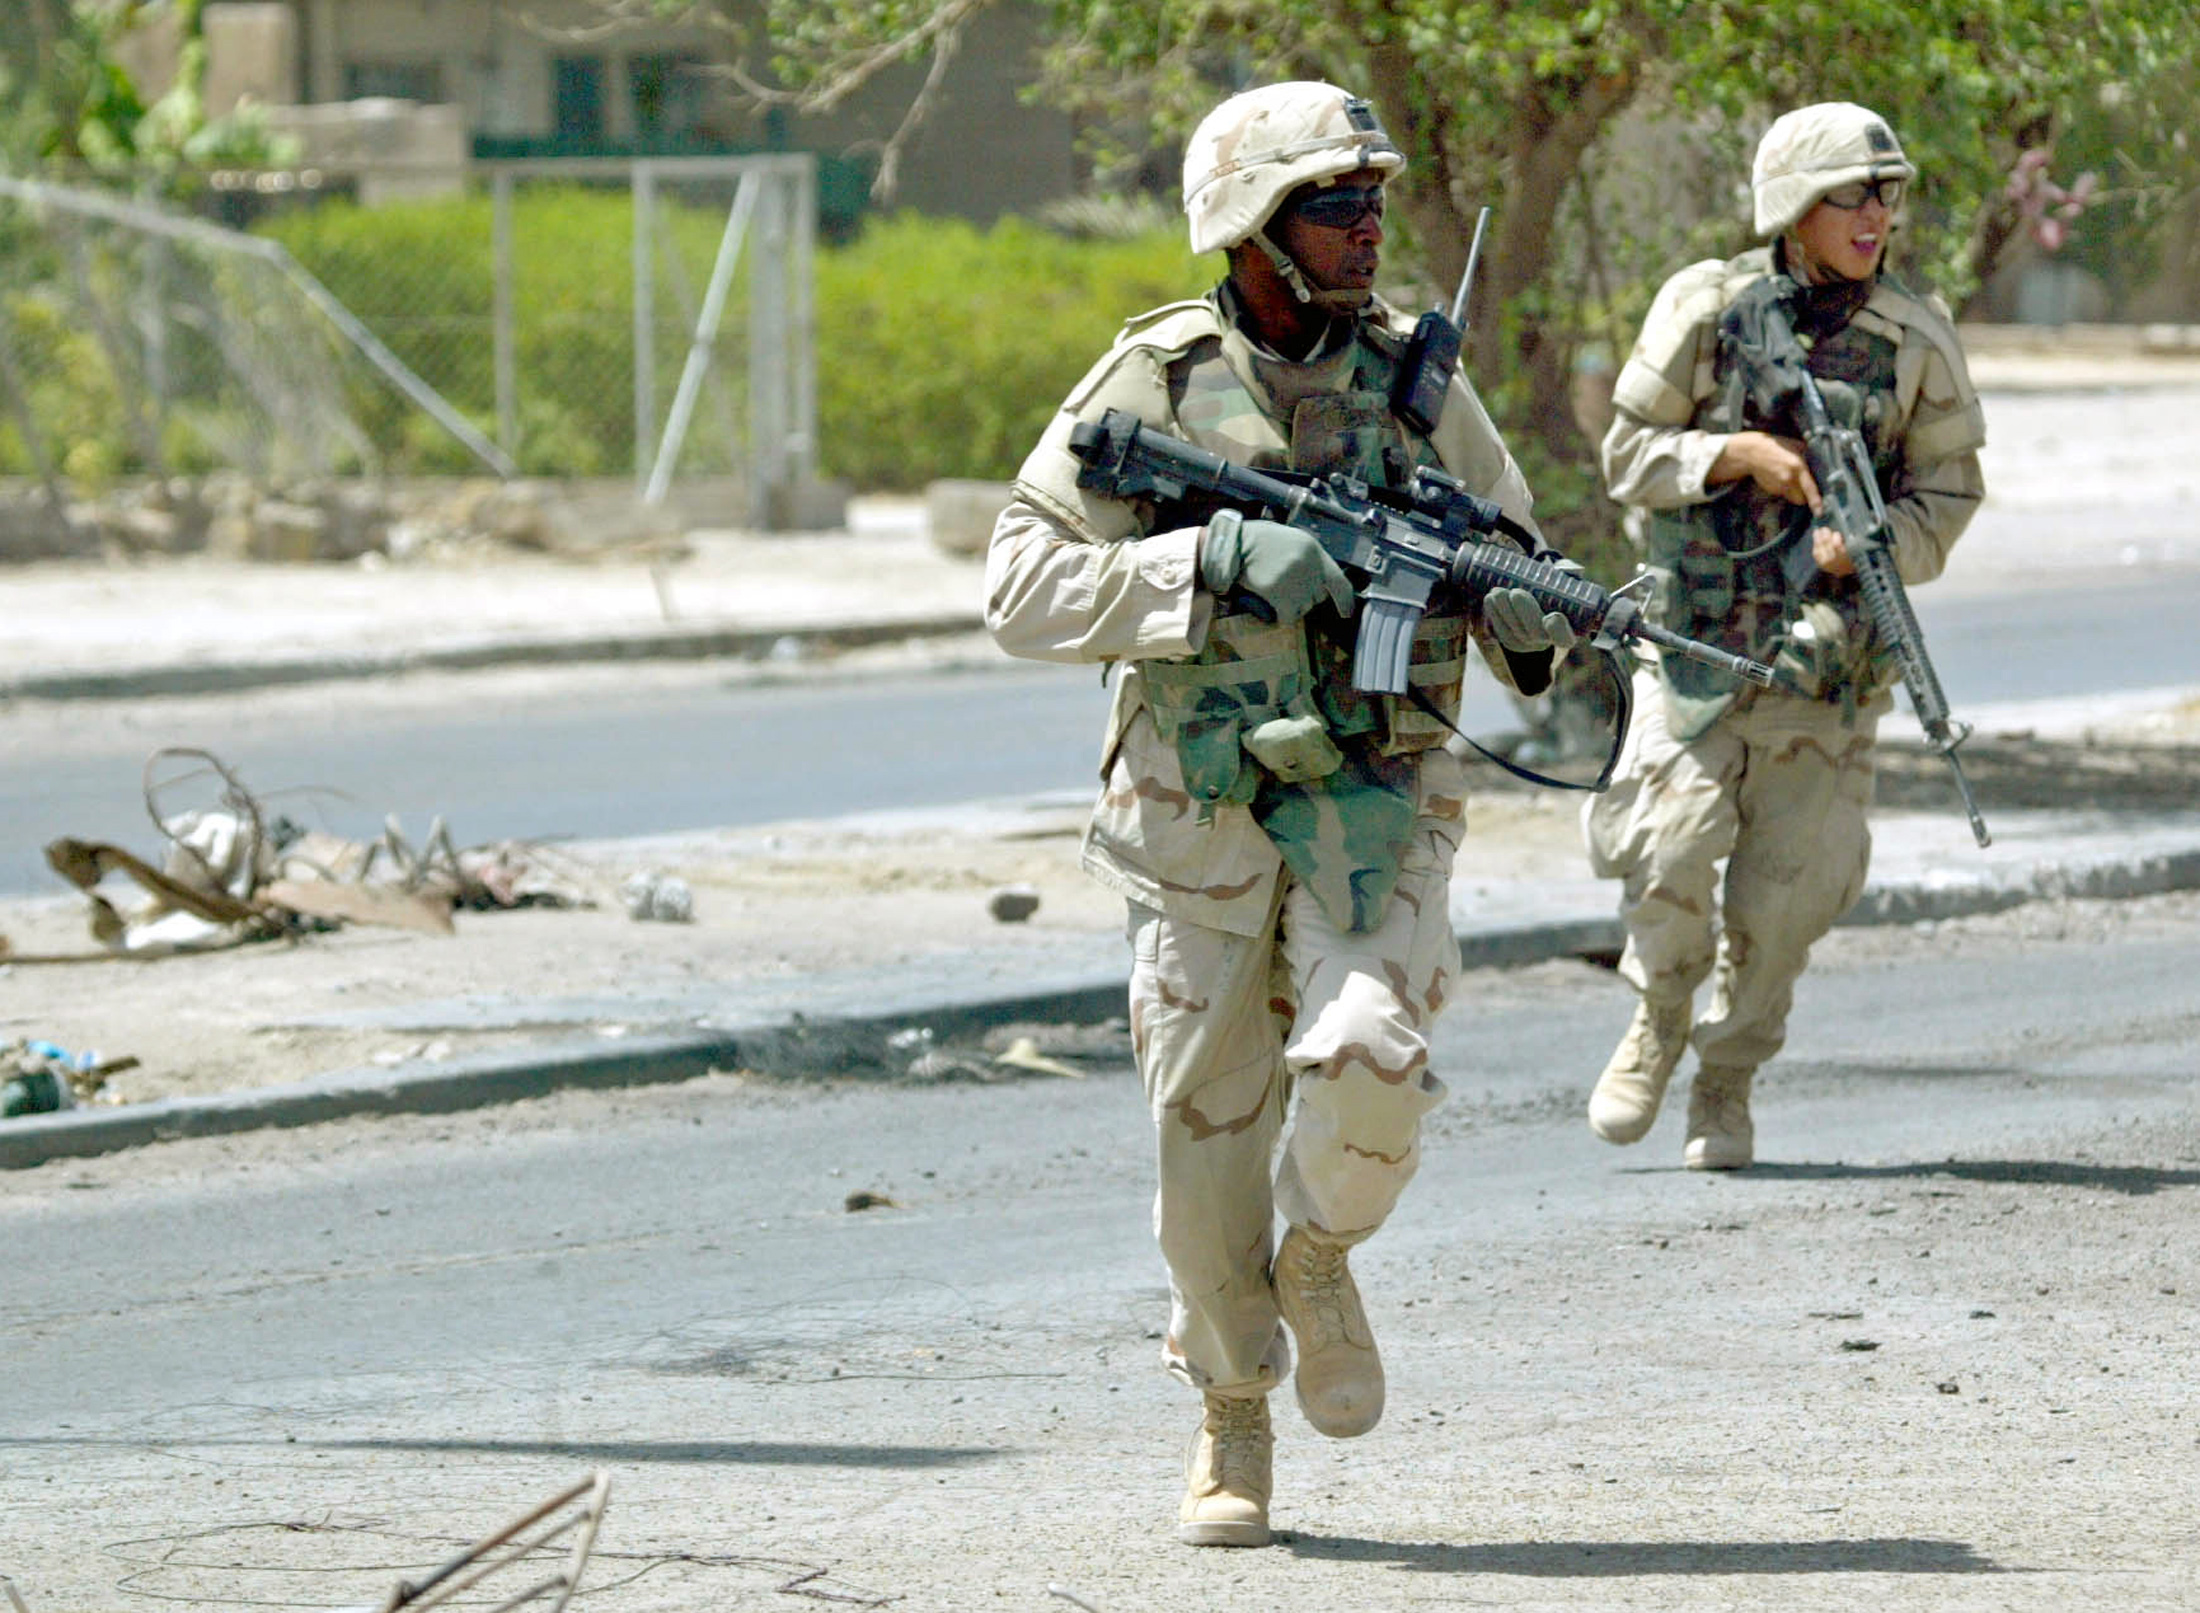 U.S. Army soldiers of the 1st Cavalry Division run across a street during a firefight in Sadr City on Aug. 18, 2004. Fighting between U.S. forces and Muqtada al-Sadr's Mehdi militia broke out in a Shiite slum in Baghdad. Photo by David P. Gilkey/Pool via Reuters